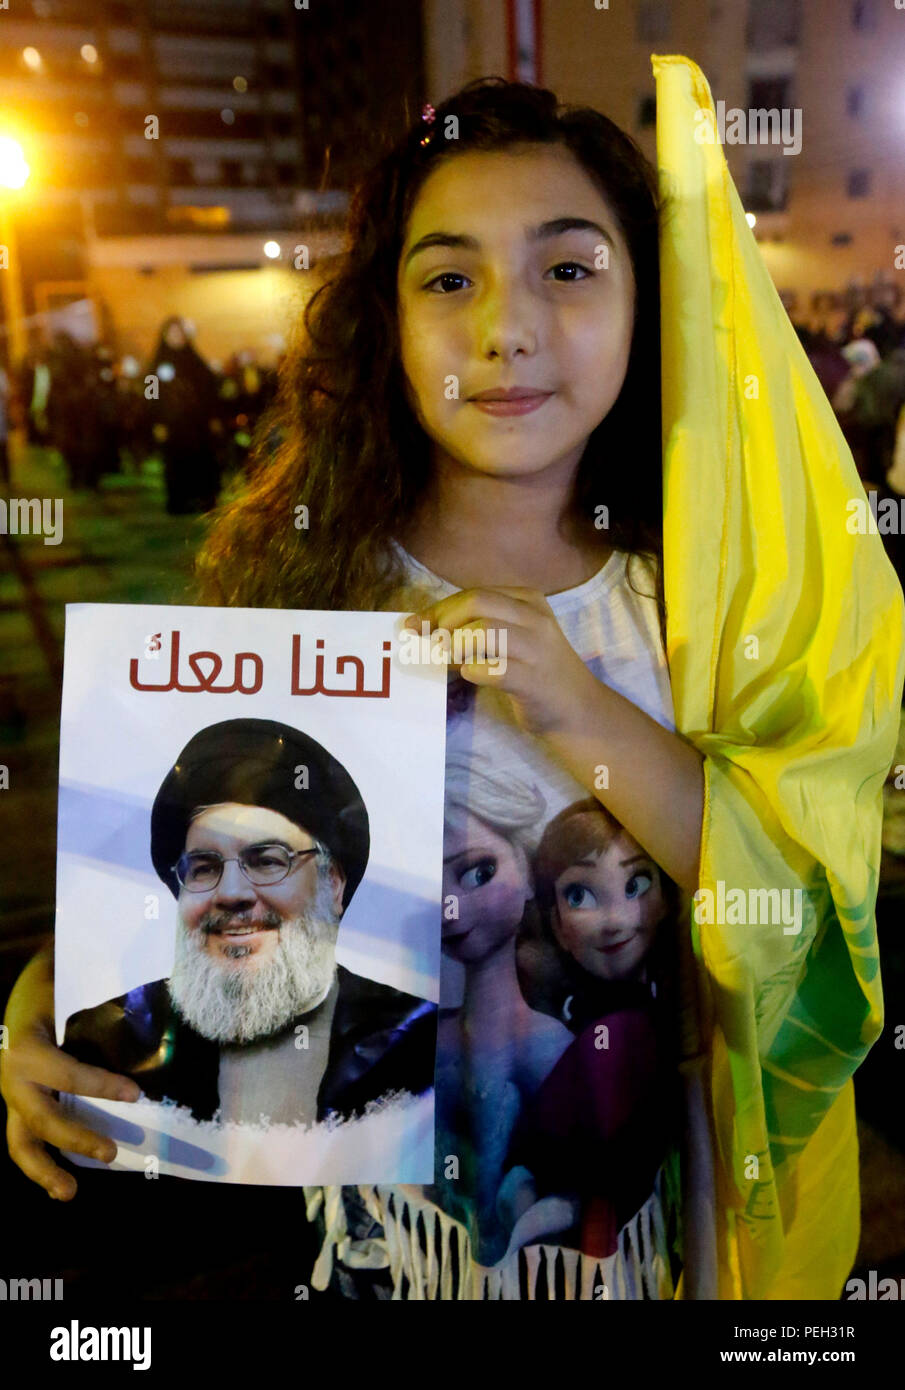 Beirut, Lebanon. 14th Aug, 2018. A girl holds the flag of Hezbollah and the picture of Hezbollah leader Sayyed Hassan Nasrallah during Nasrallah delivering a televised speech in Beirut, Lebanon, Aug. 14, 2018. Hezbollah's leader Sayyed Hassan Nasrallah on Tuesday called on political parties to maintain their negotiation efforts until they reach consensus on cabinet formation in Lebanon. Credit: Bilal Jawich/Xinhua/Alamy Live News - Stock Image